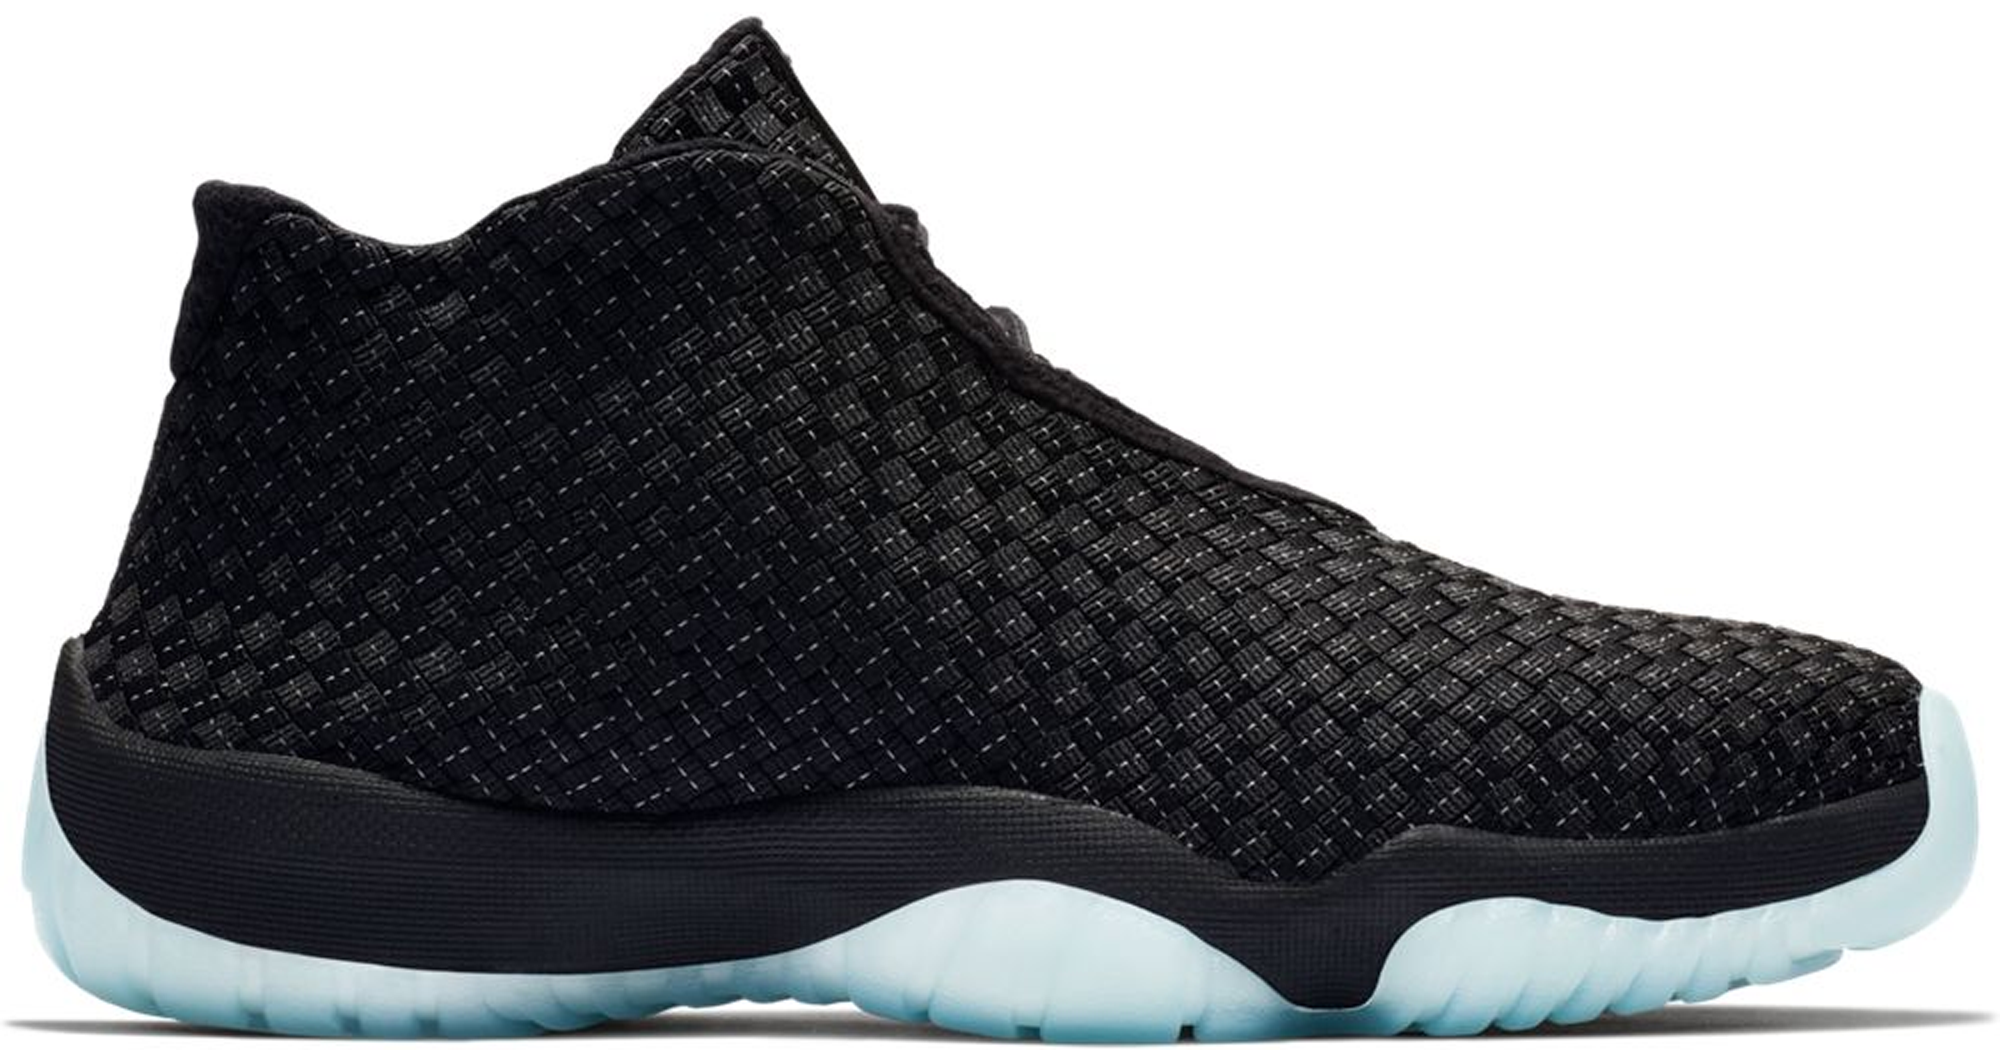 promo code a0cd7 04918 ... promo code air jordan other shoes average sale price 1d1c7 25a82 canada air  jordan future gs ...